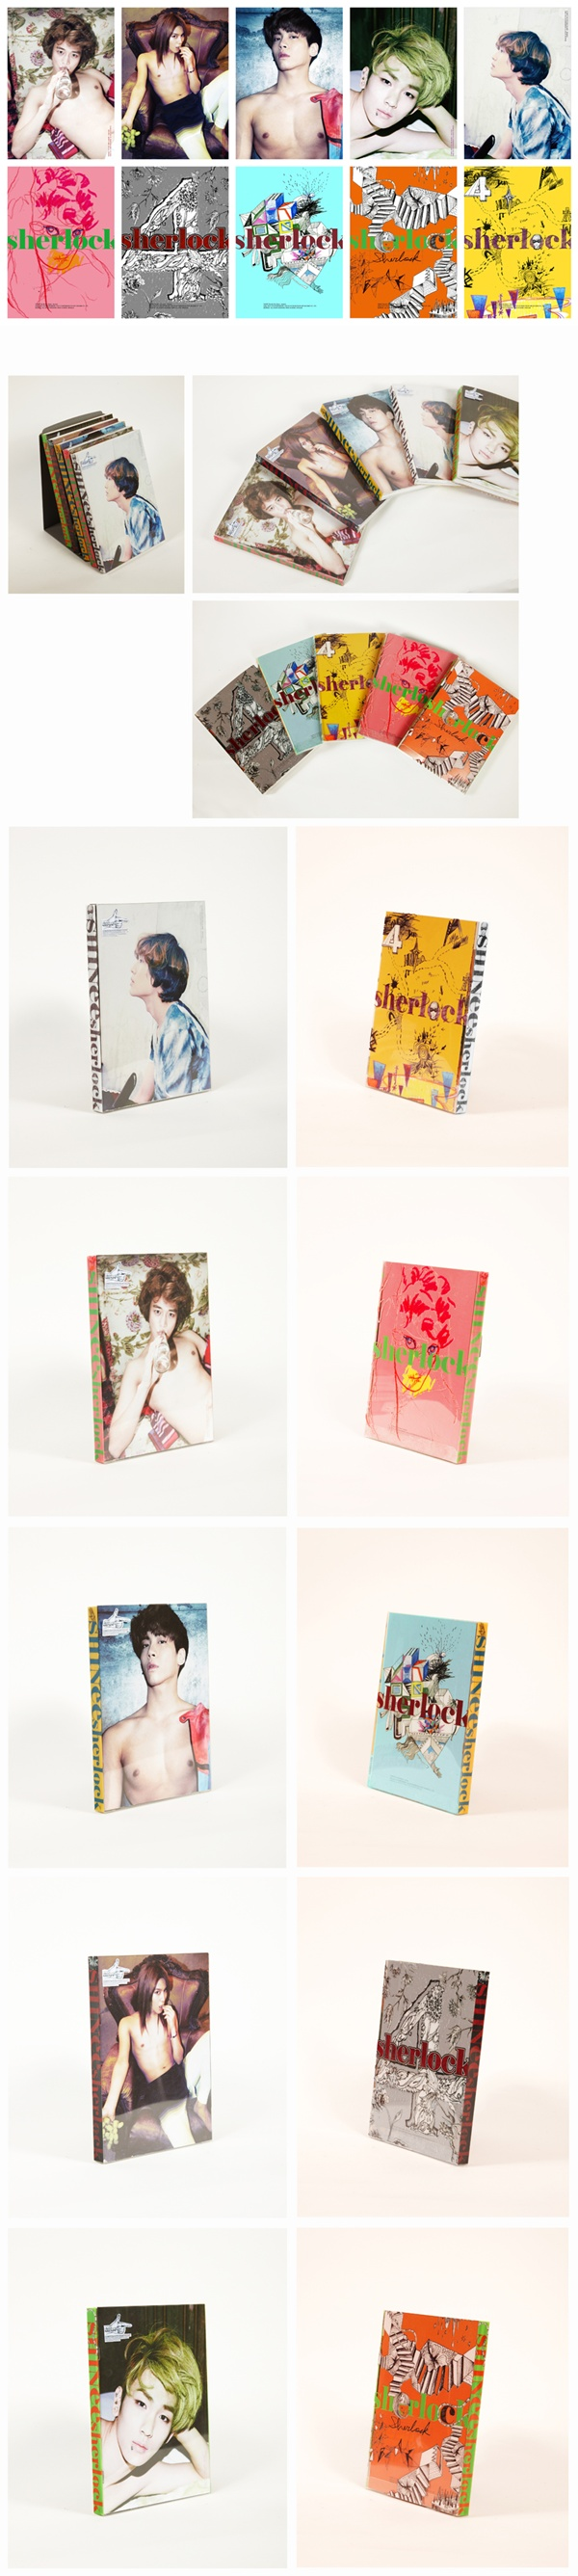 SHINEE 4th Mini Album Sherlock CD